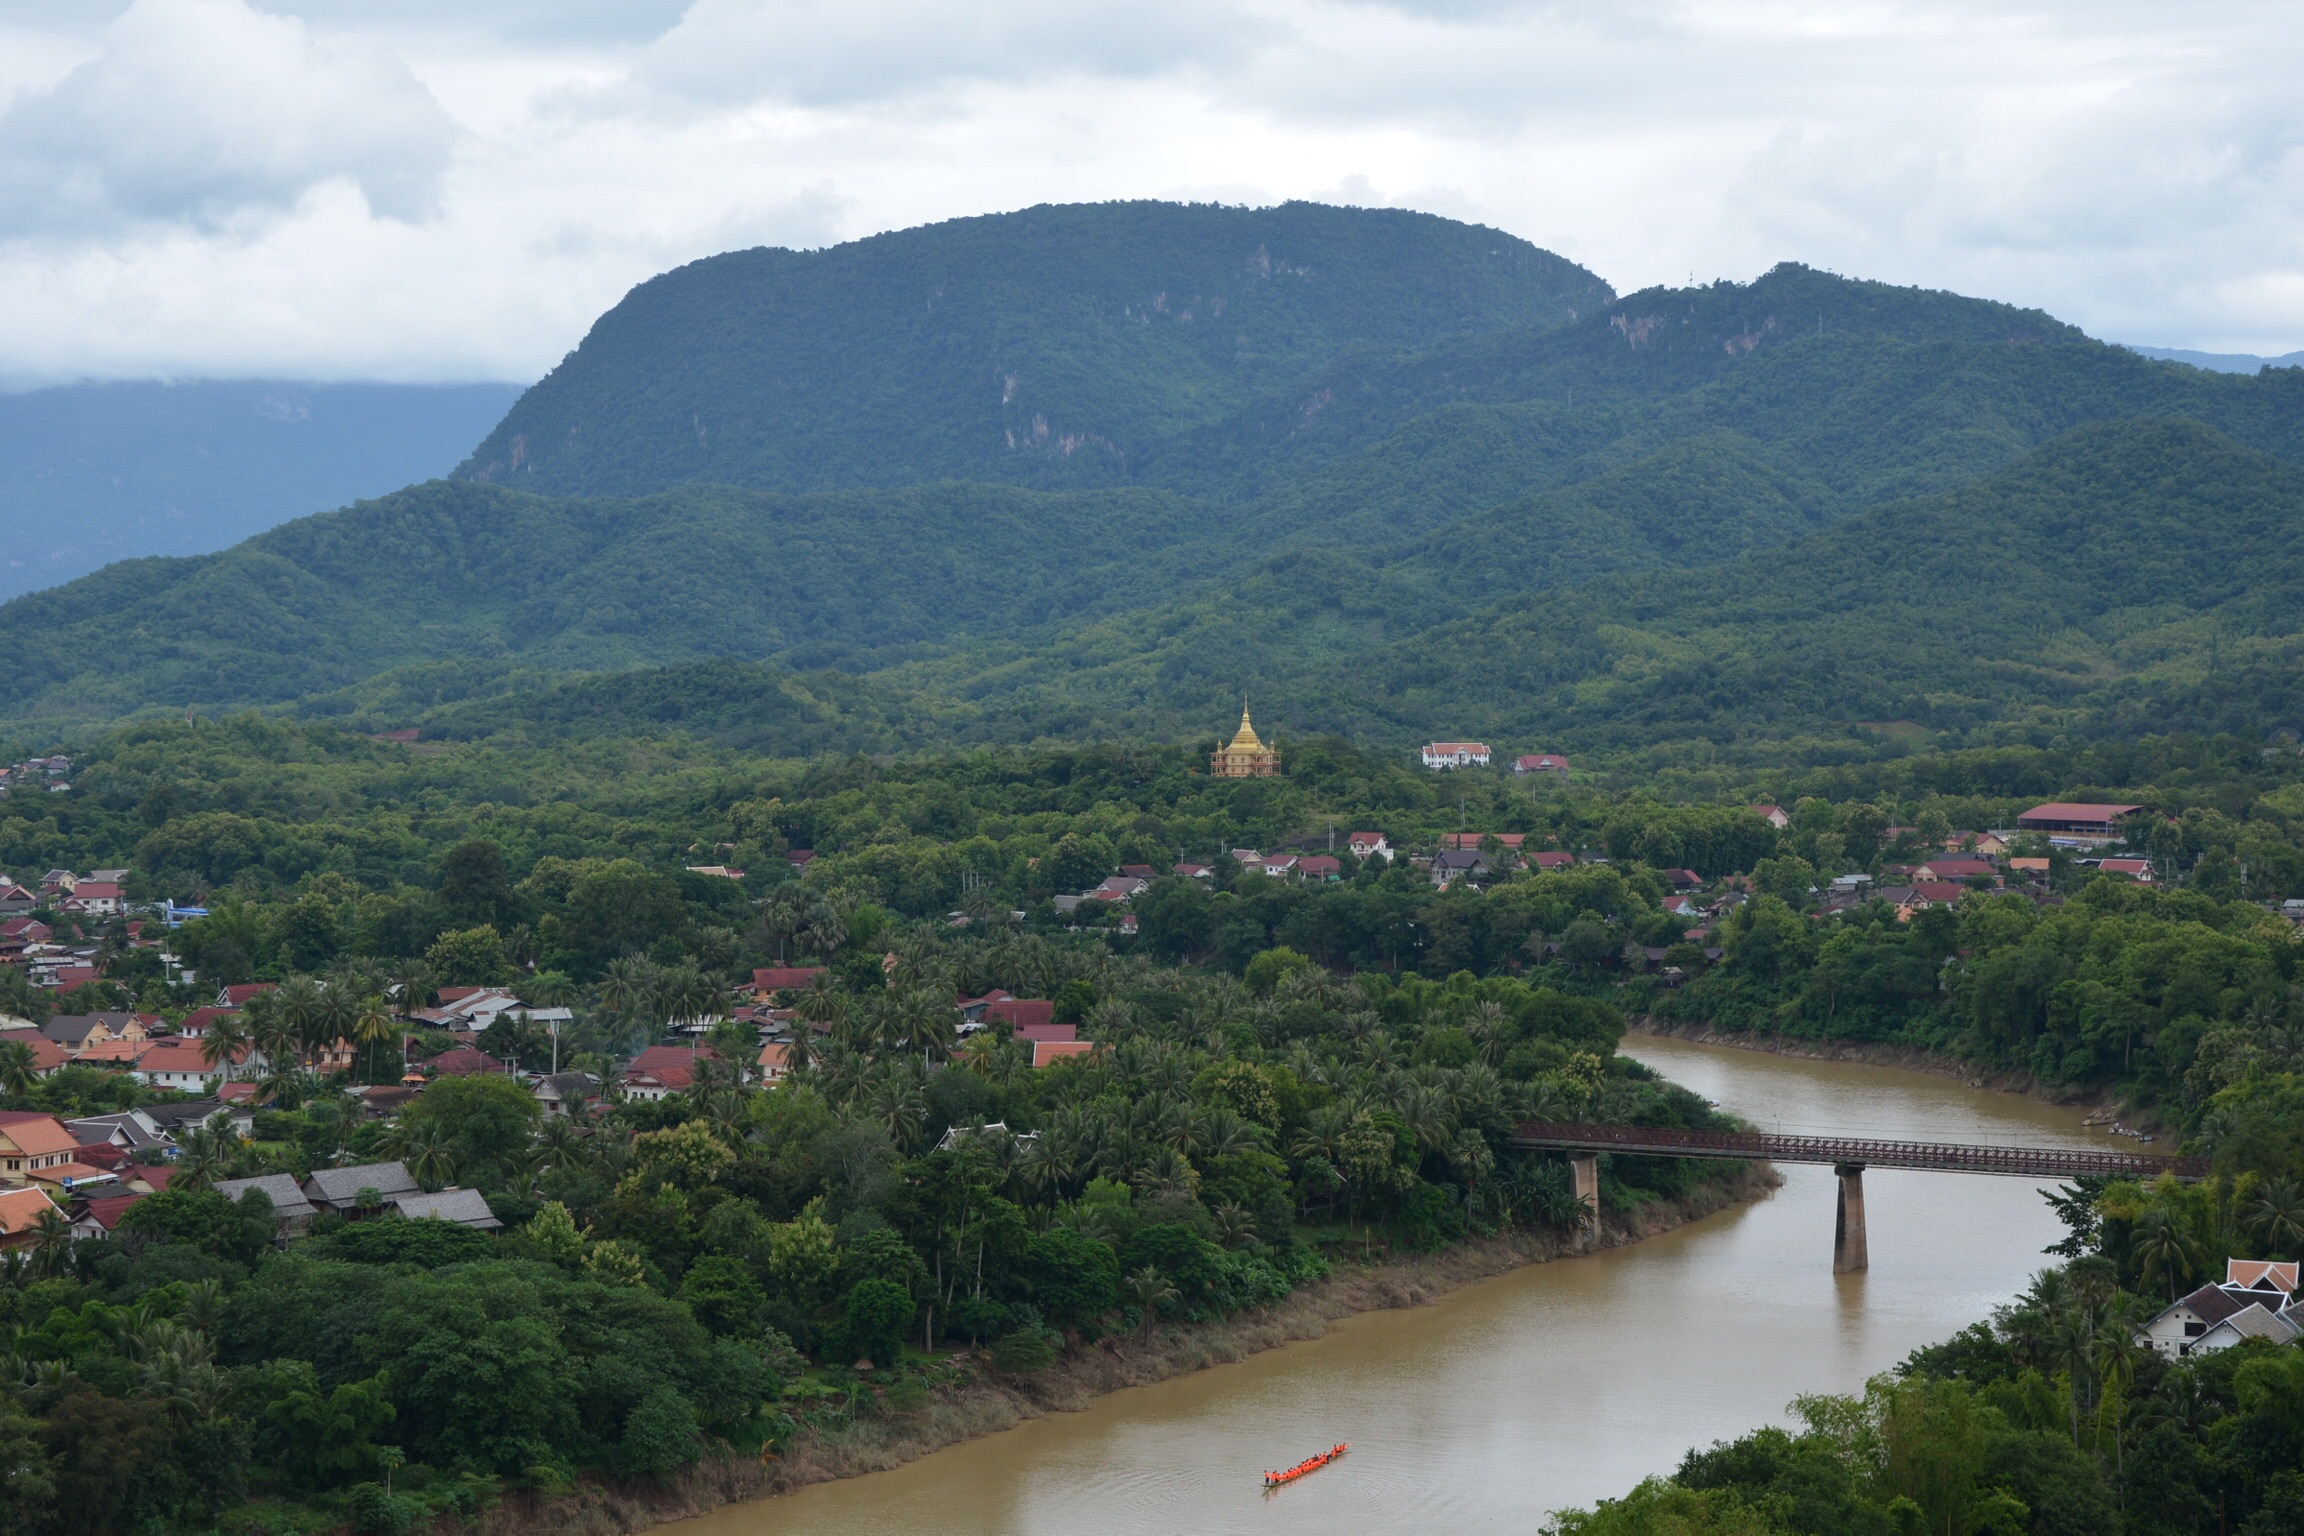 View of the Nam Khan River from Mount Phou Si